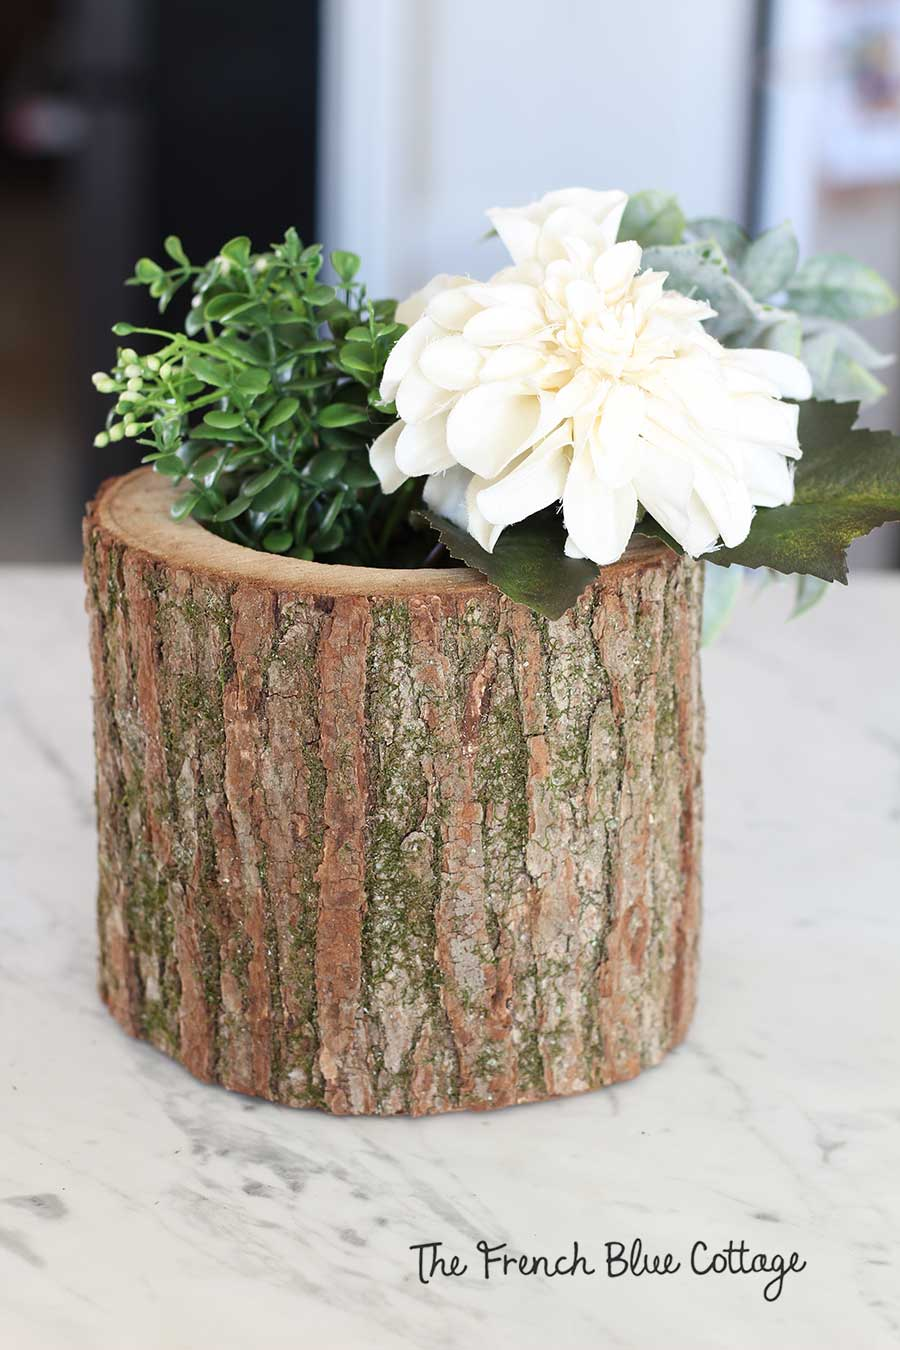 Ivory flowers and leaves in wood log vase.